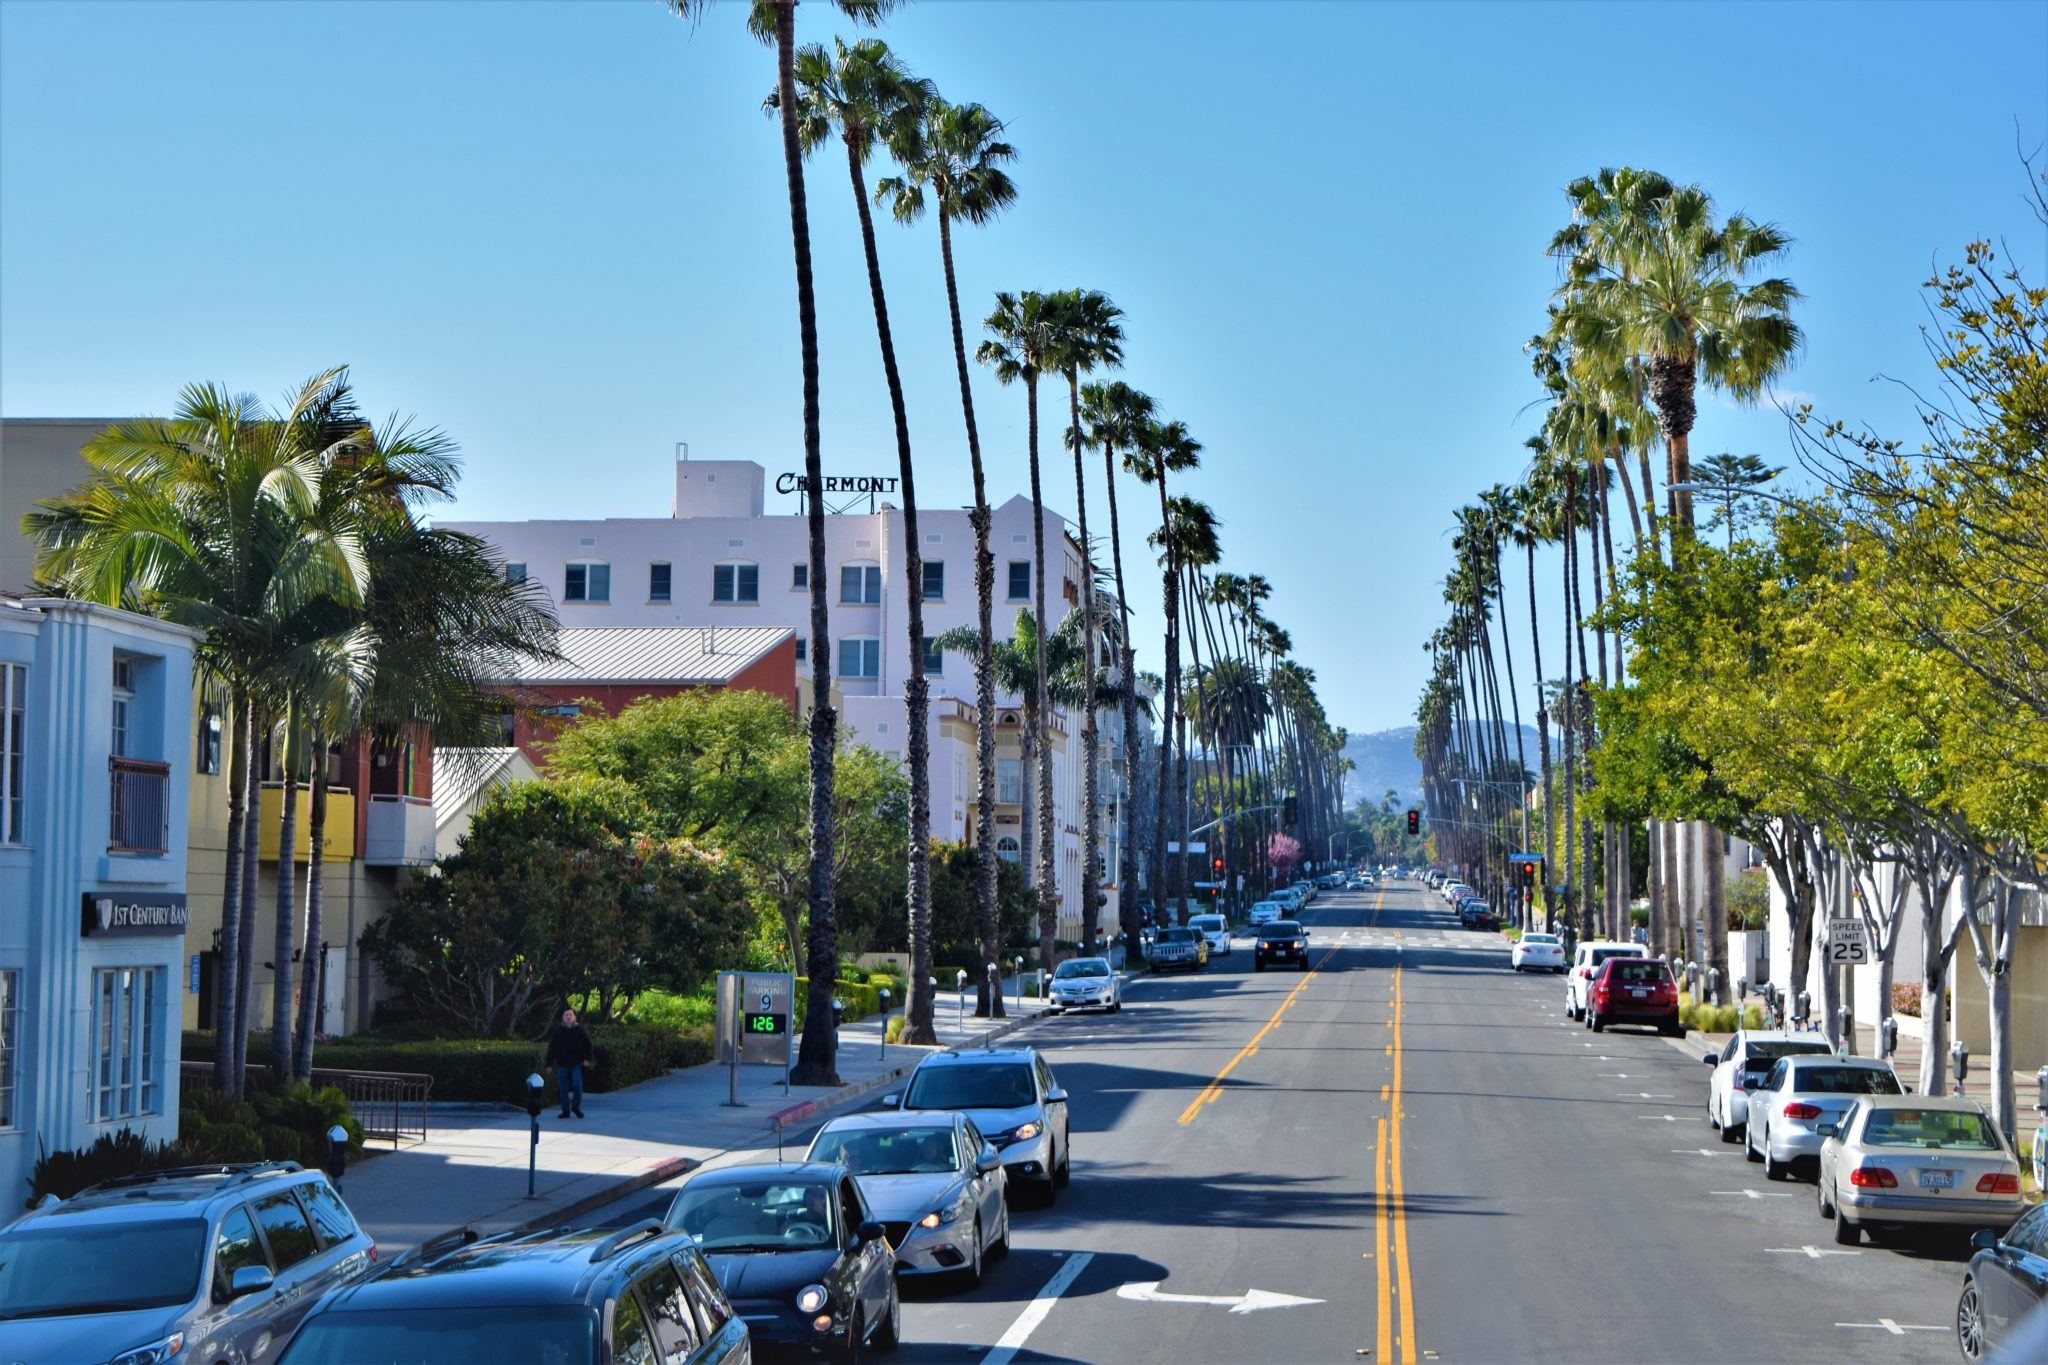 Tree lined streets of la, hop on hop off bus los angeles